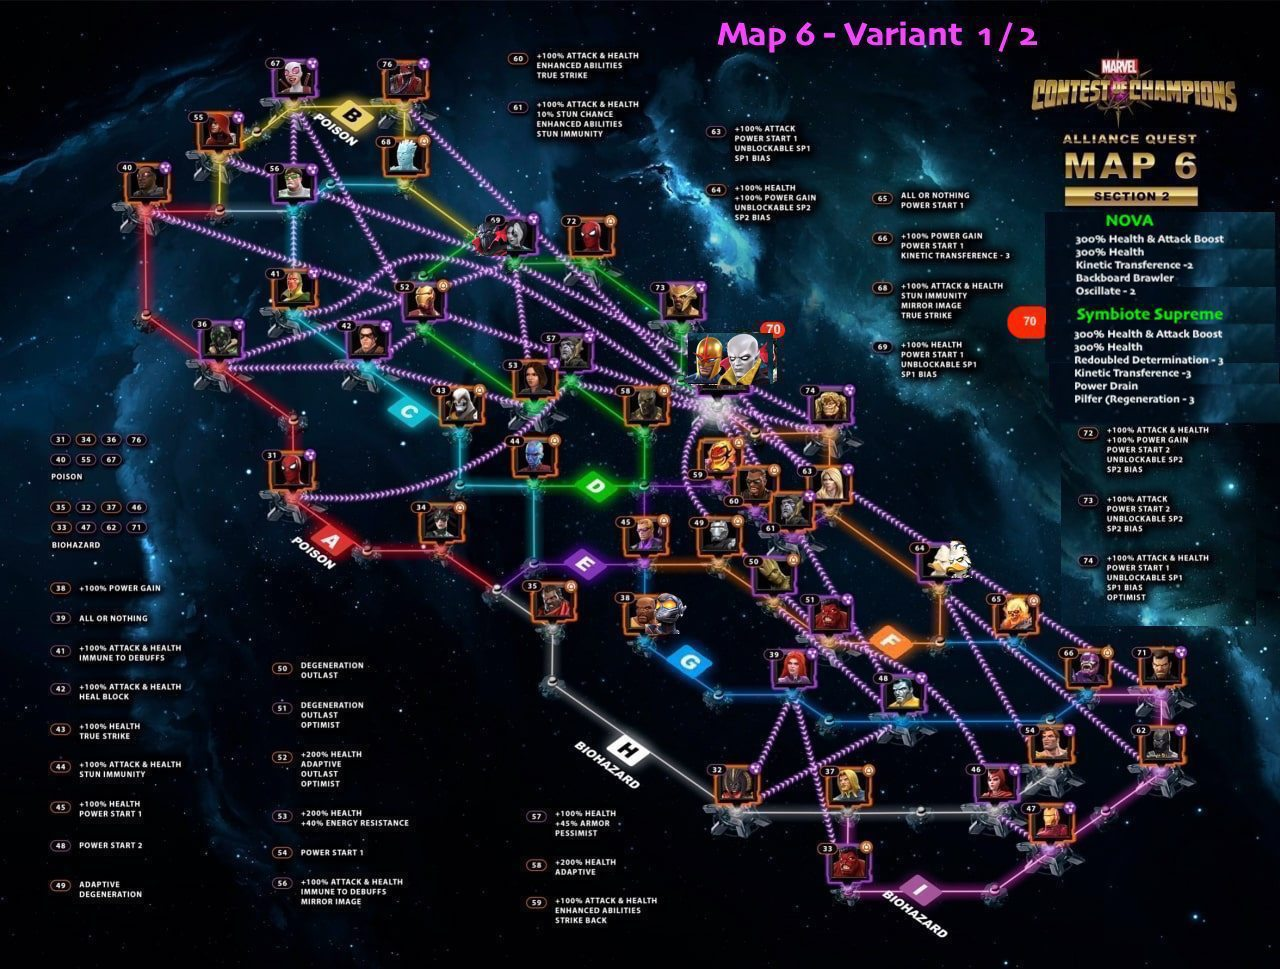 v1-2-section2-aq-map-6-updated